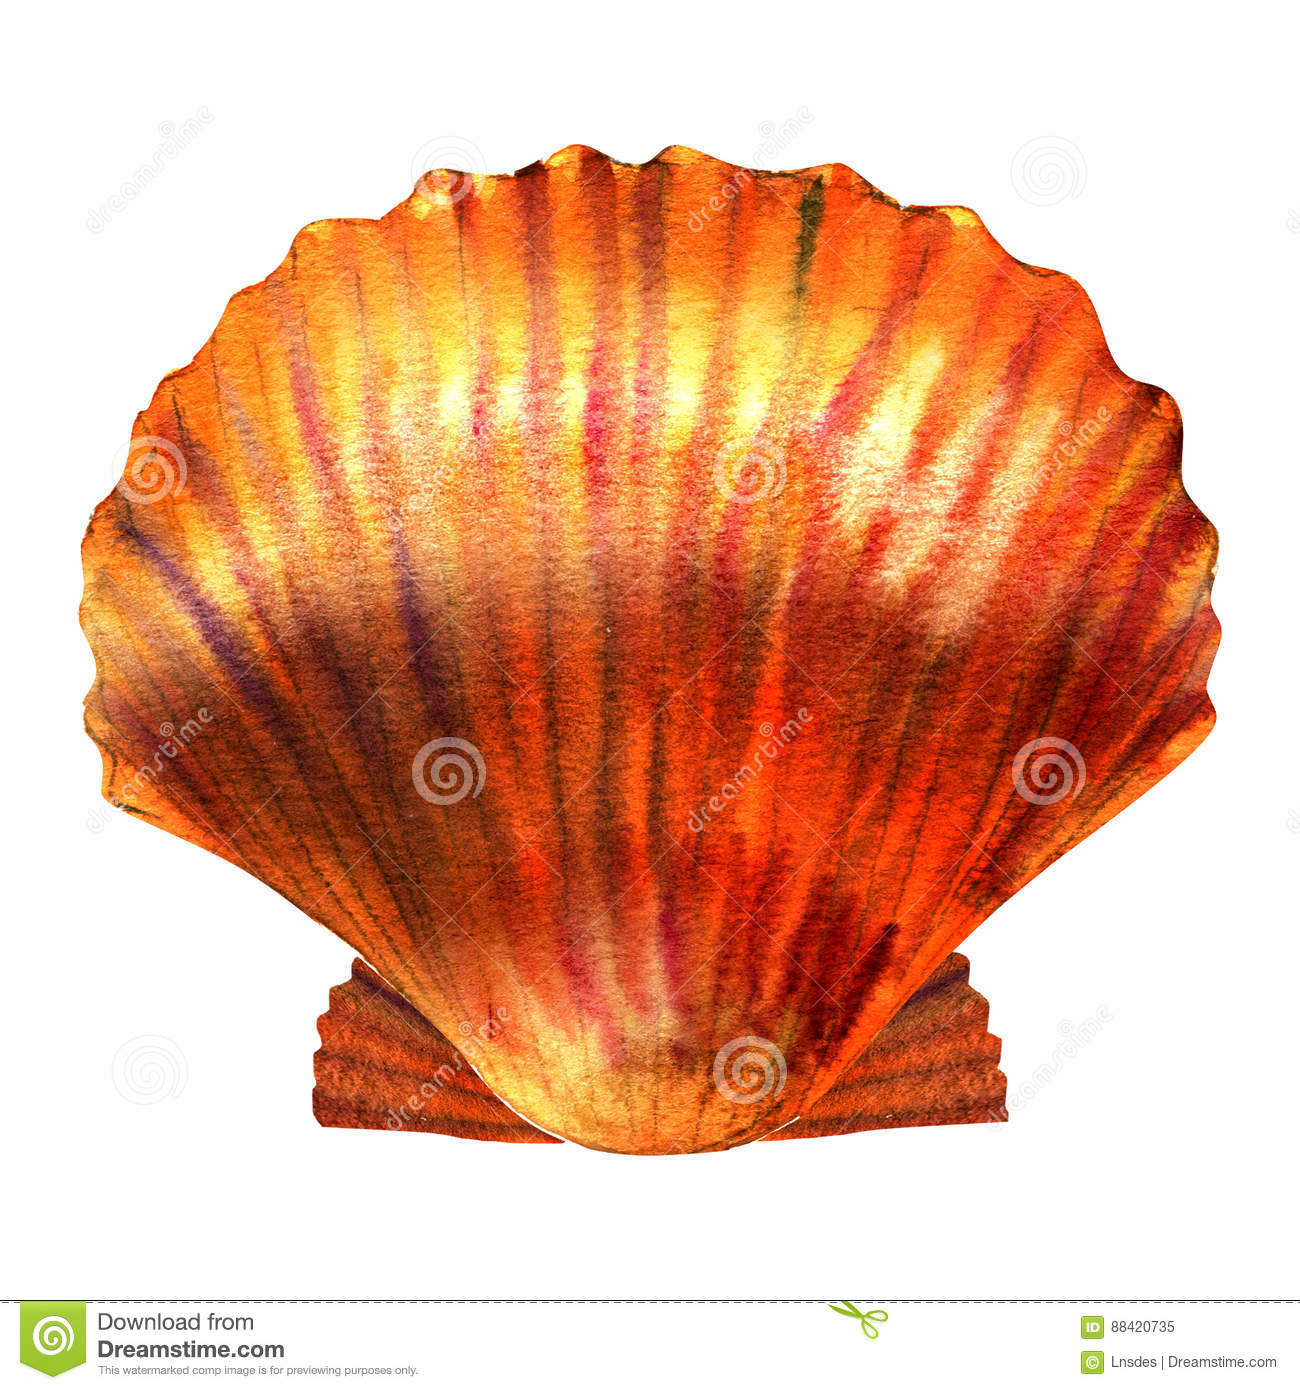 Scallop shell stock illustrations 3345 scallop shell stock scallop shell seashell isolated watercolor illustration on white background royalty free stock biocorpaavc Image collections